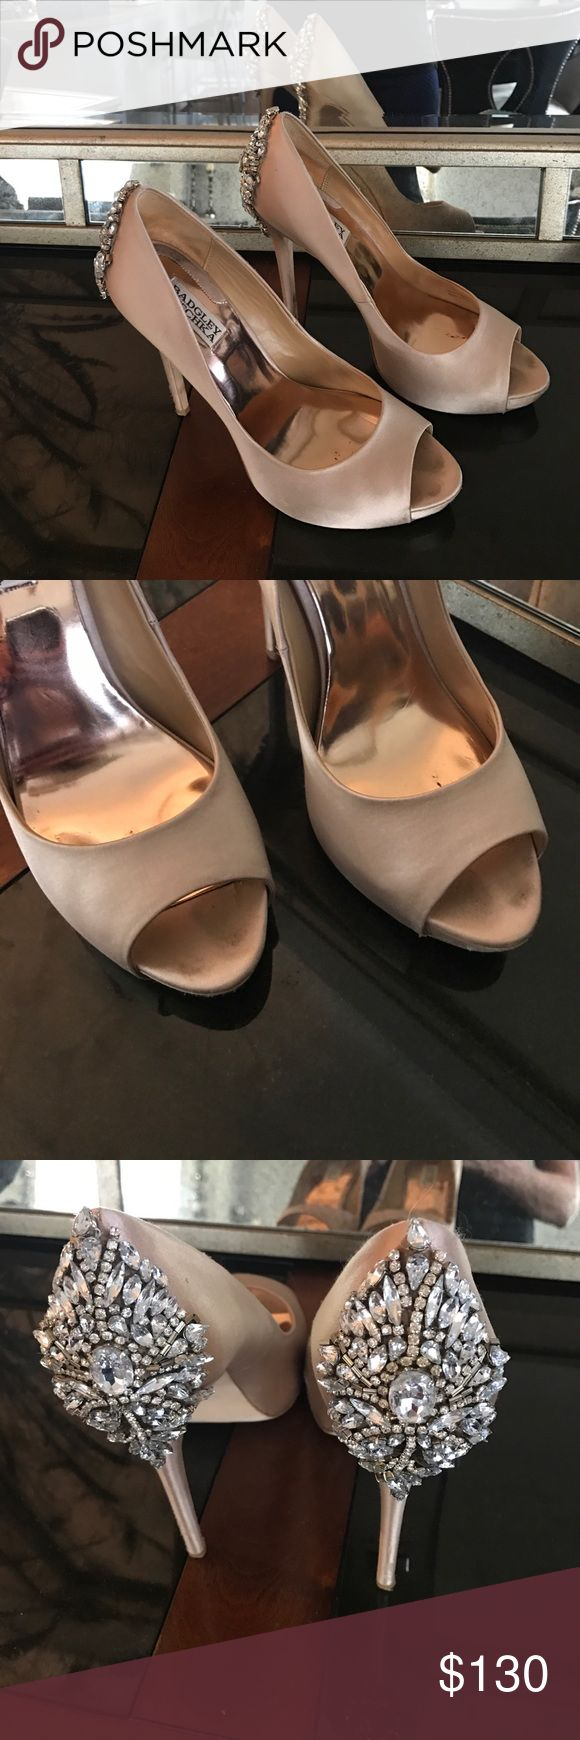 Badgley Mischka peep toe pumps Worn once to a wedding. In box great condition. Badgley Mischka Shoes Heels